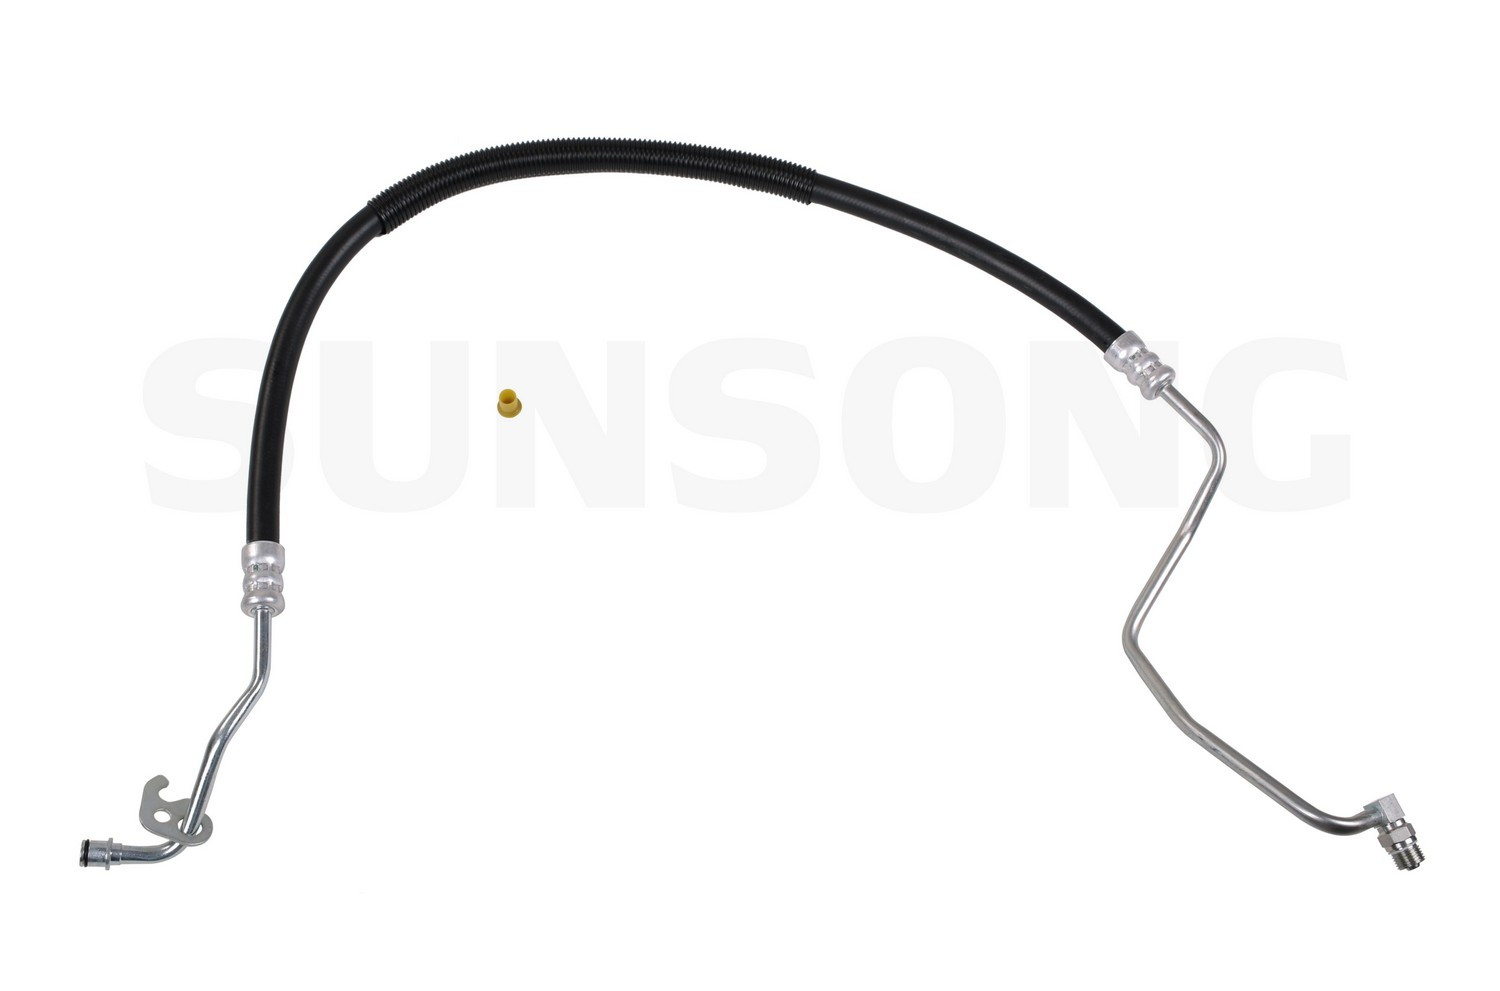 2005 Ford F-150 Power Steering Pressure Line Hose Assembly